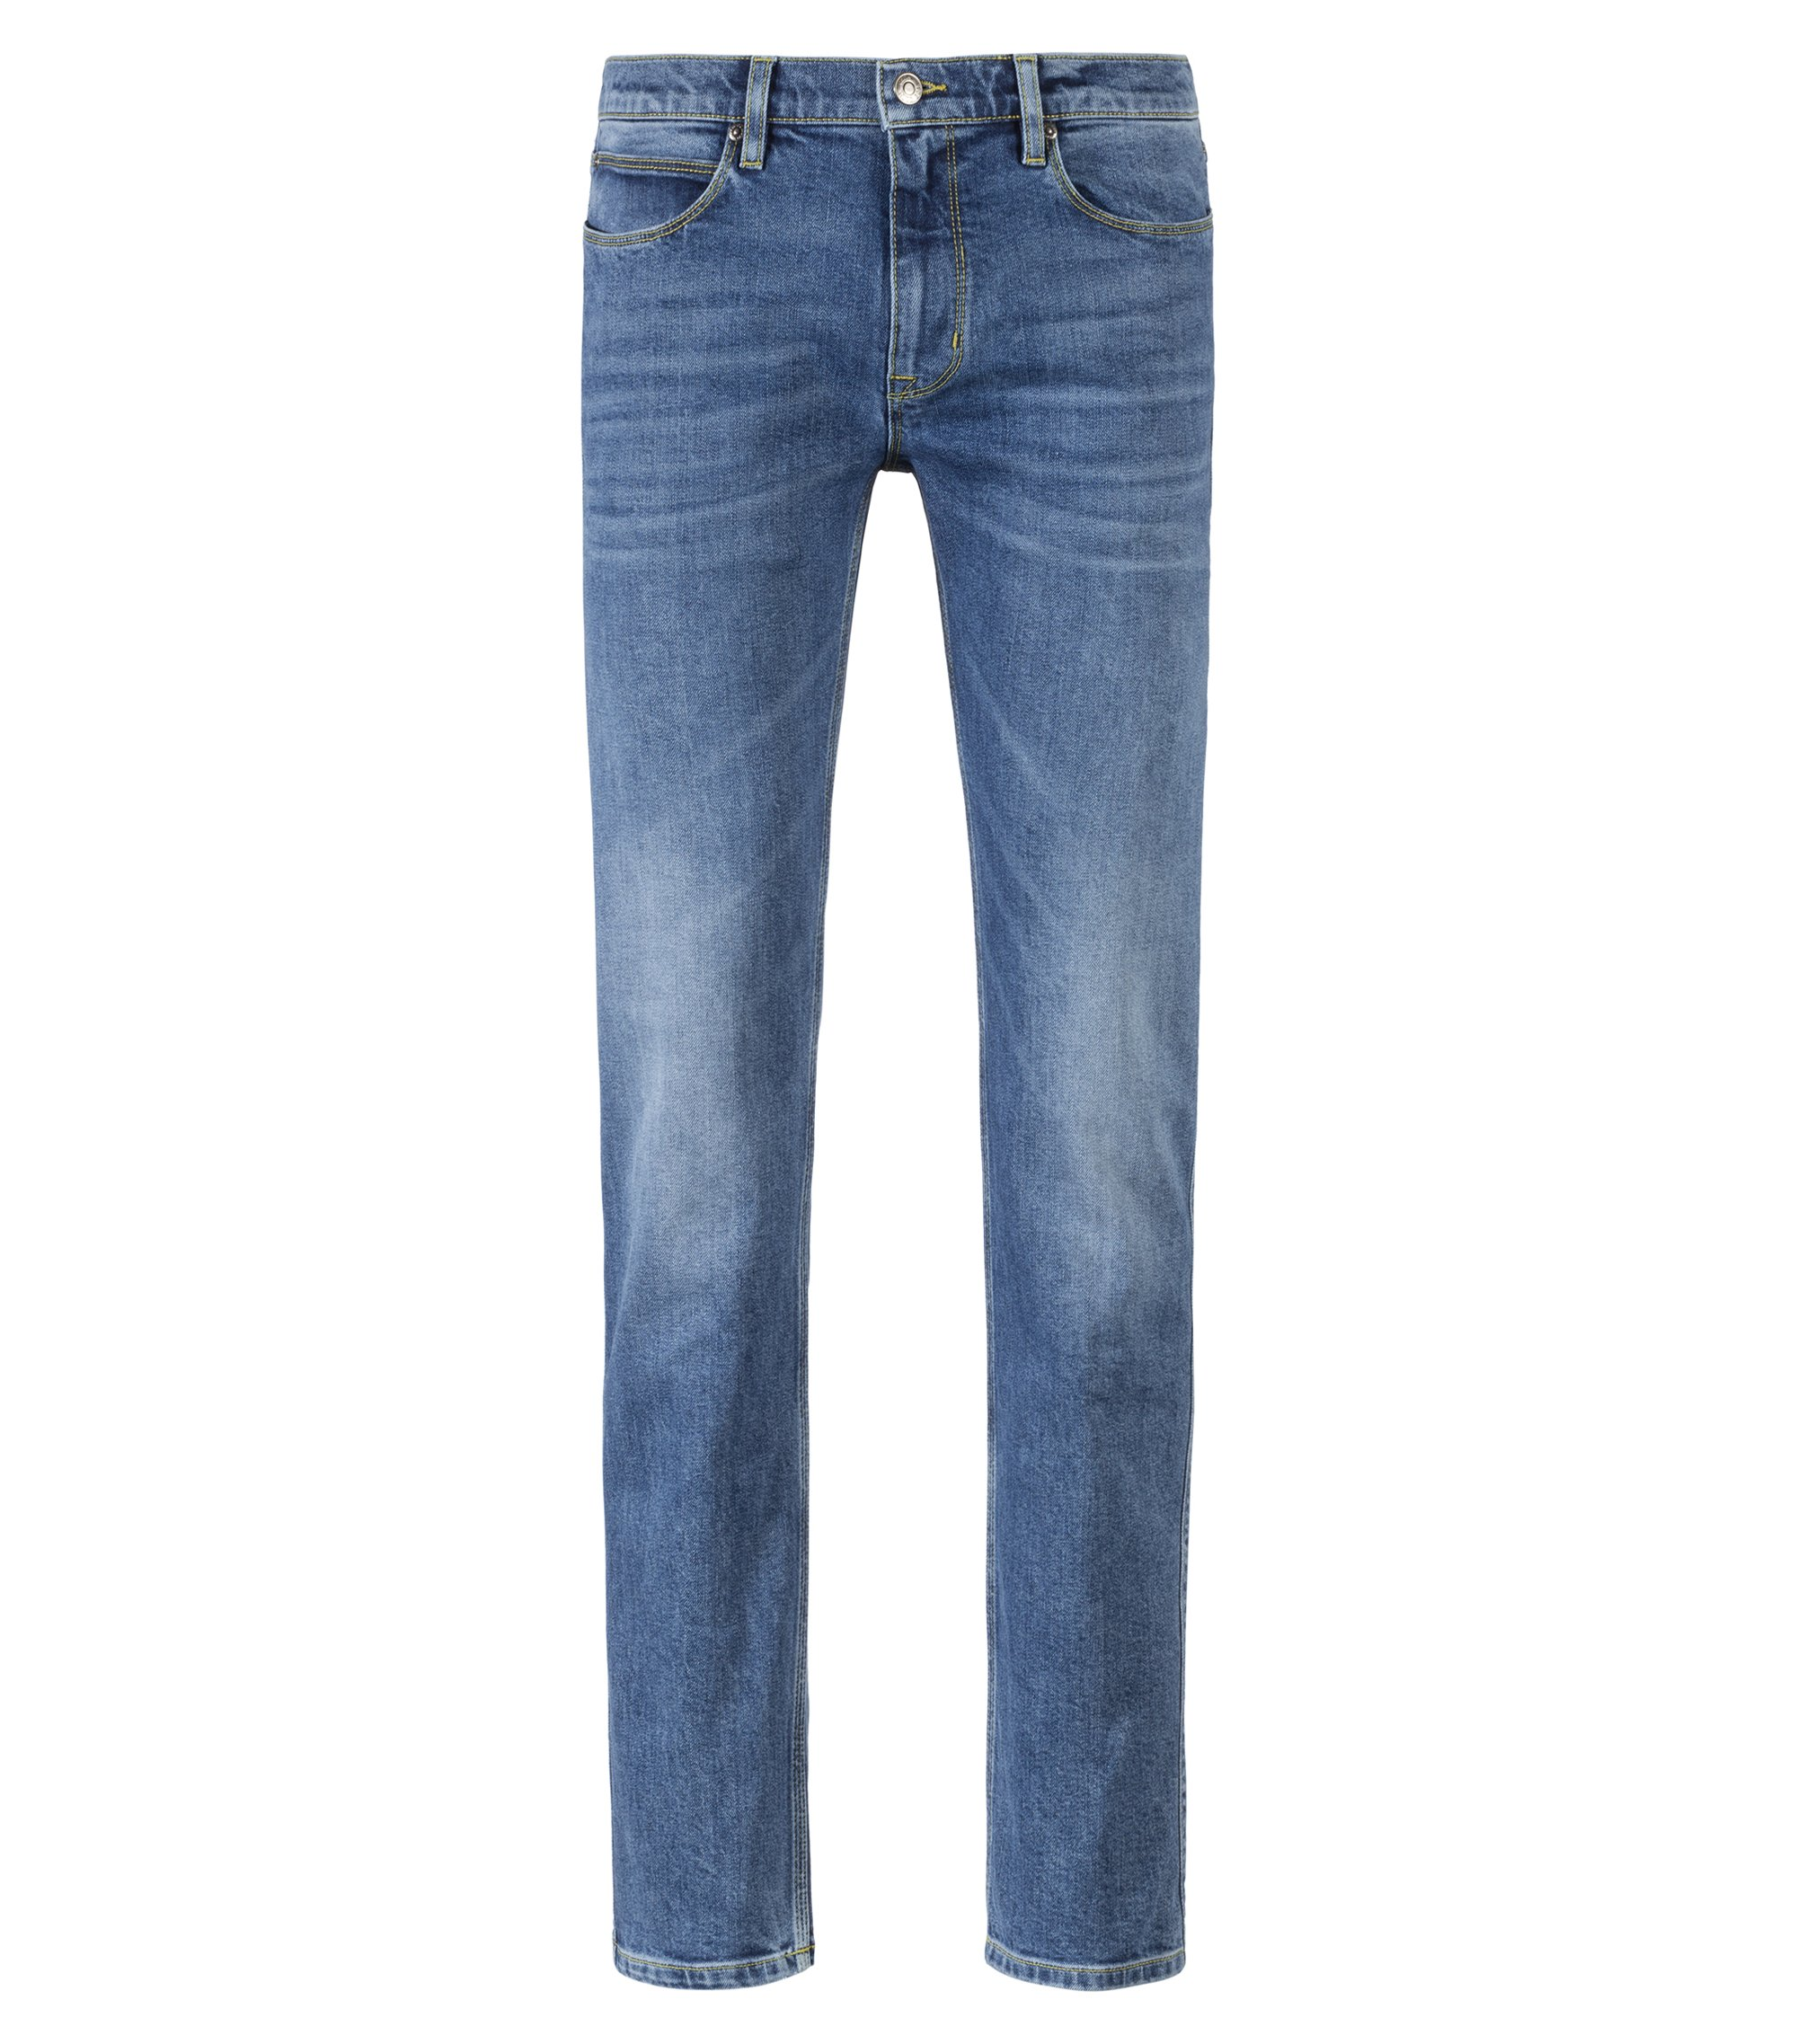 Jeans slim fit in denim elasticizzato blu con impunture di colore a contrasto, Blu